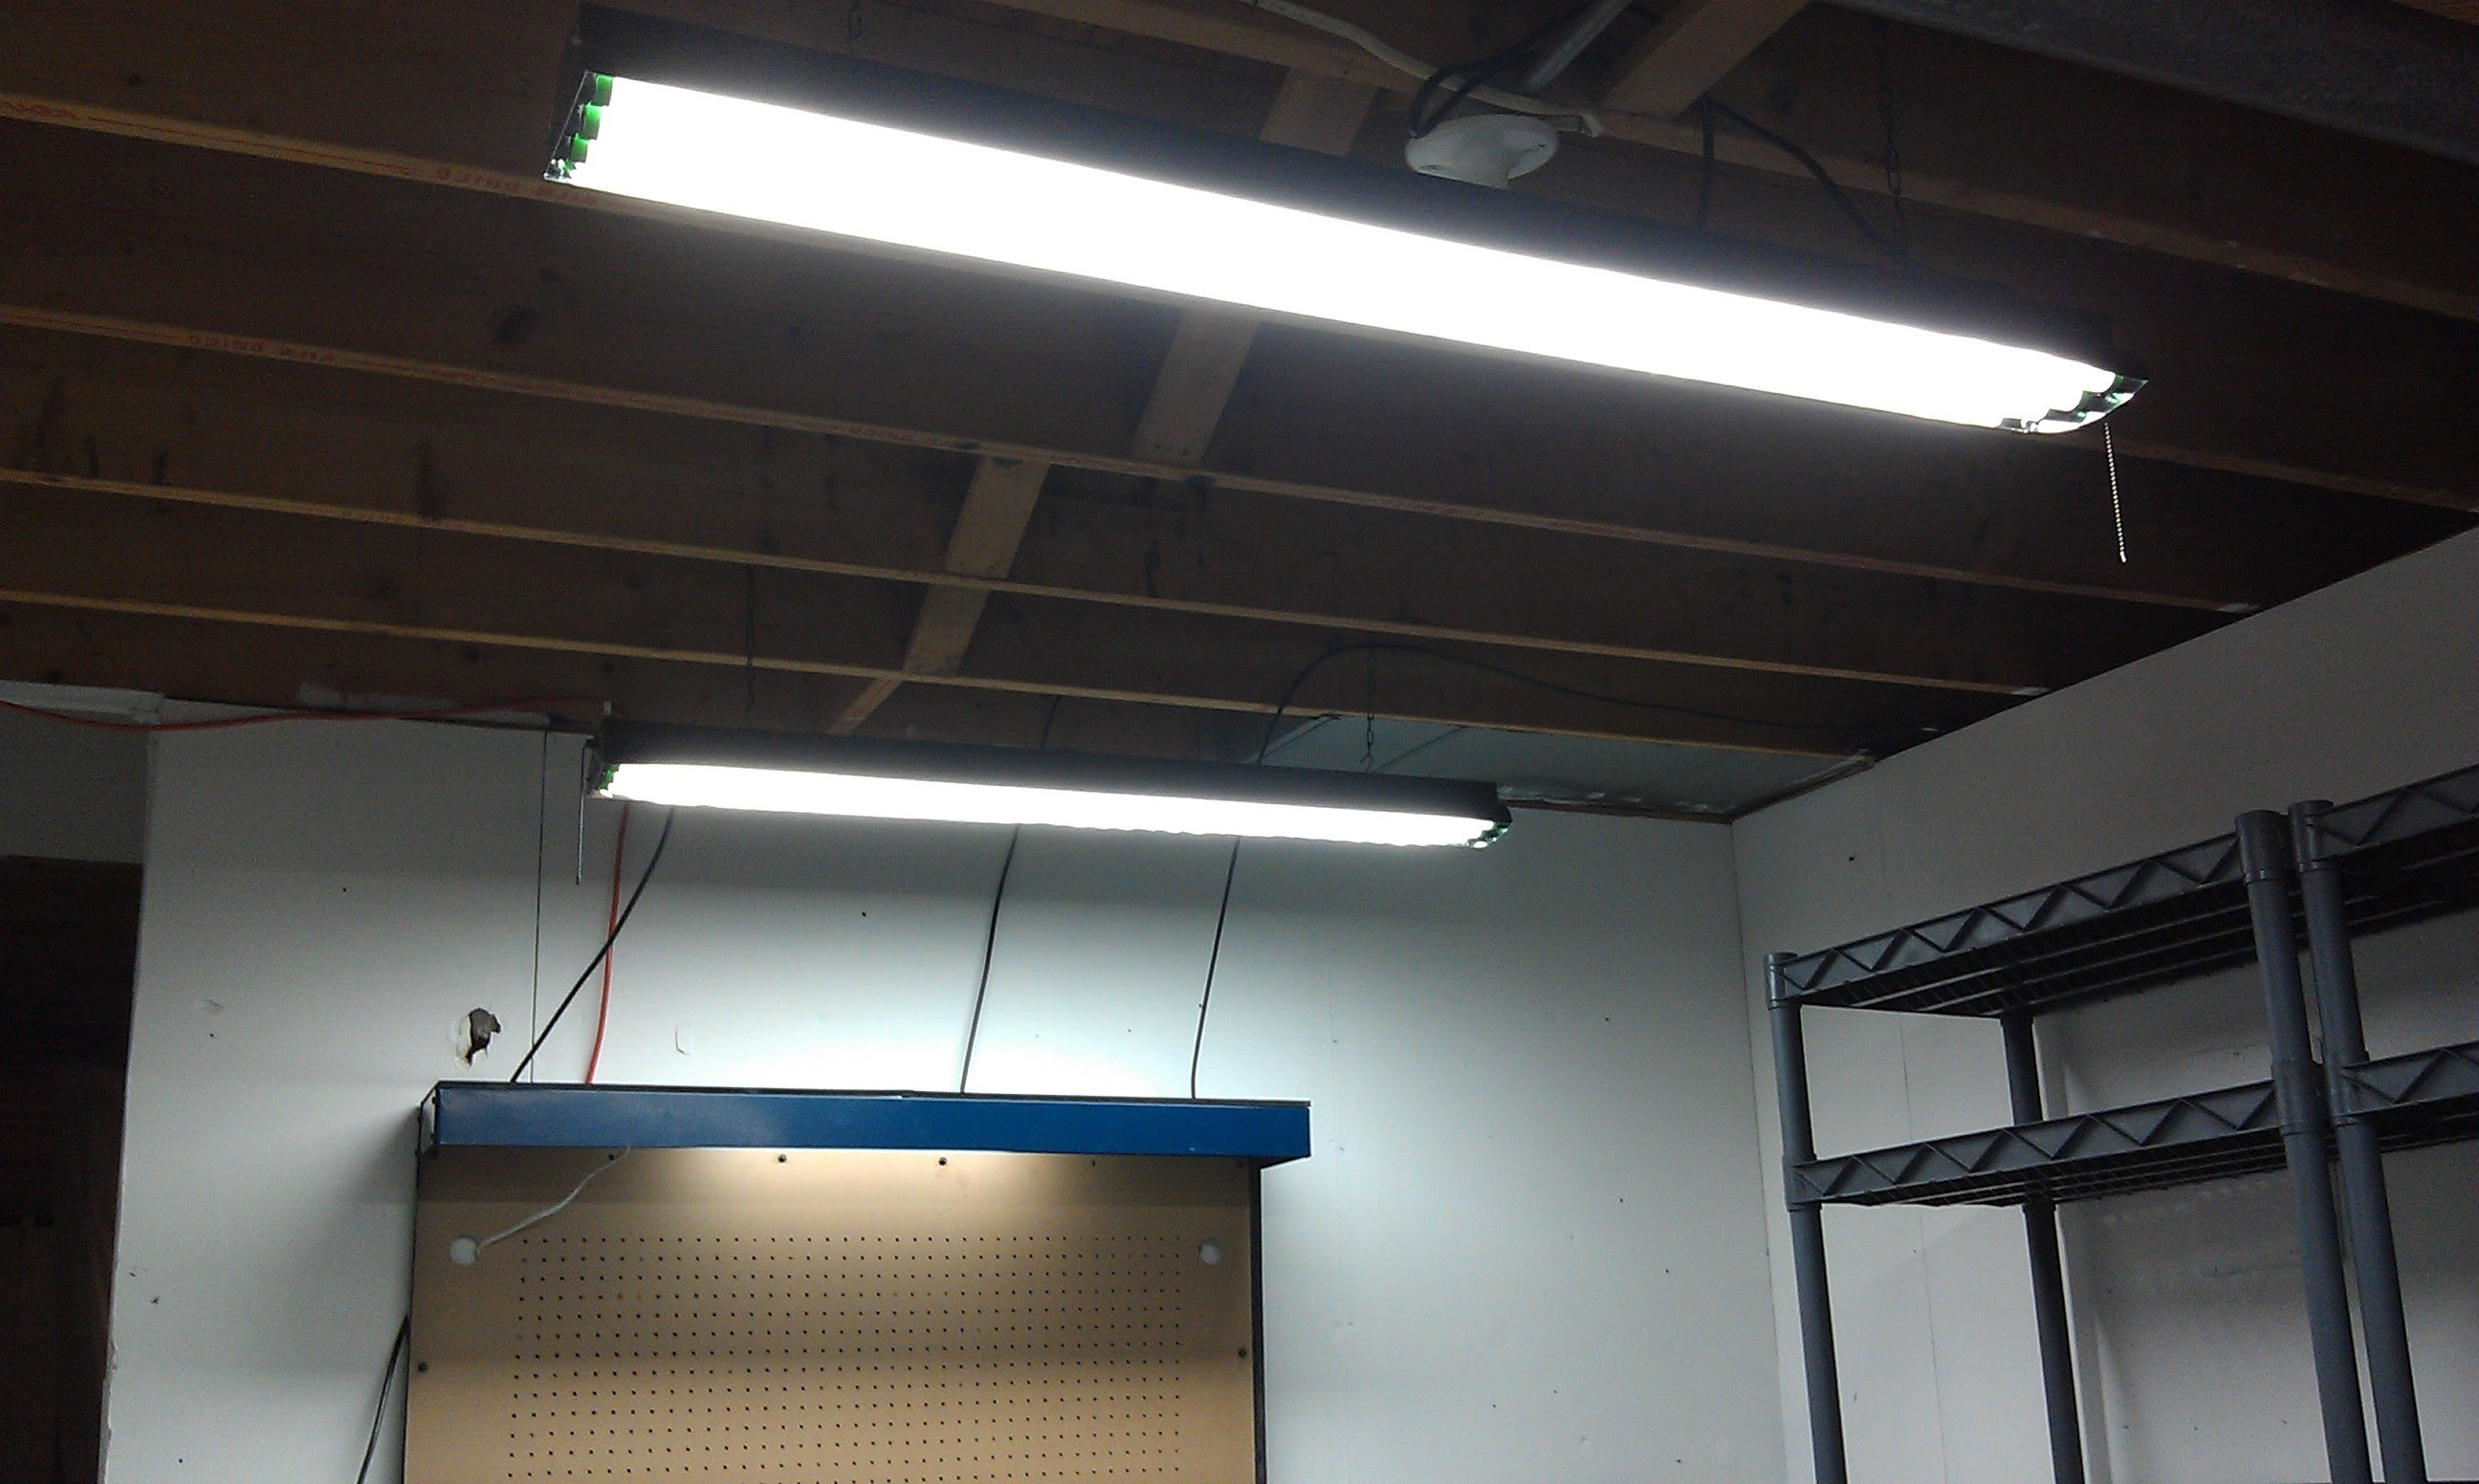 Outdoor Fluorescent Ceiling Lights Within Trendy Light : Modern Suspended Fluorescent Lighting Drop Ceiling Light (View 12 of 20)